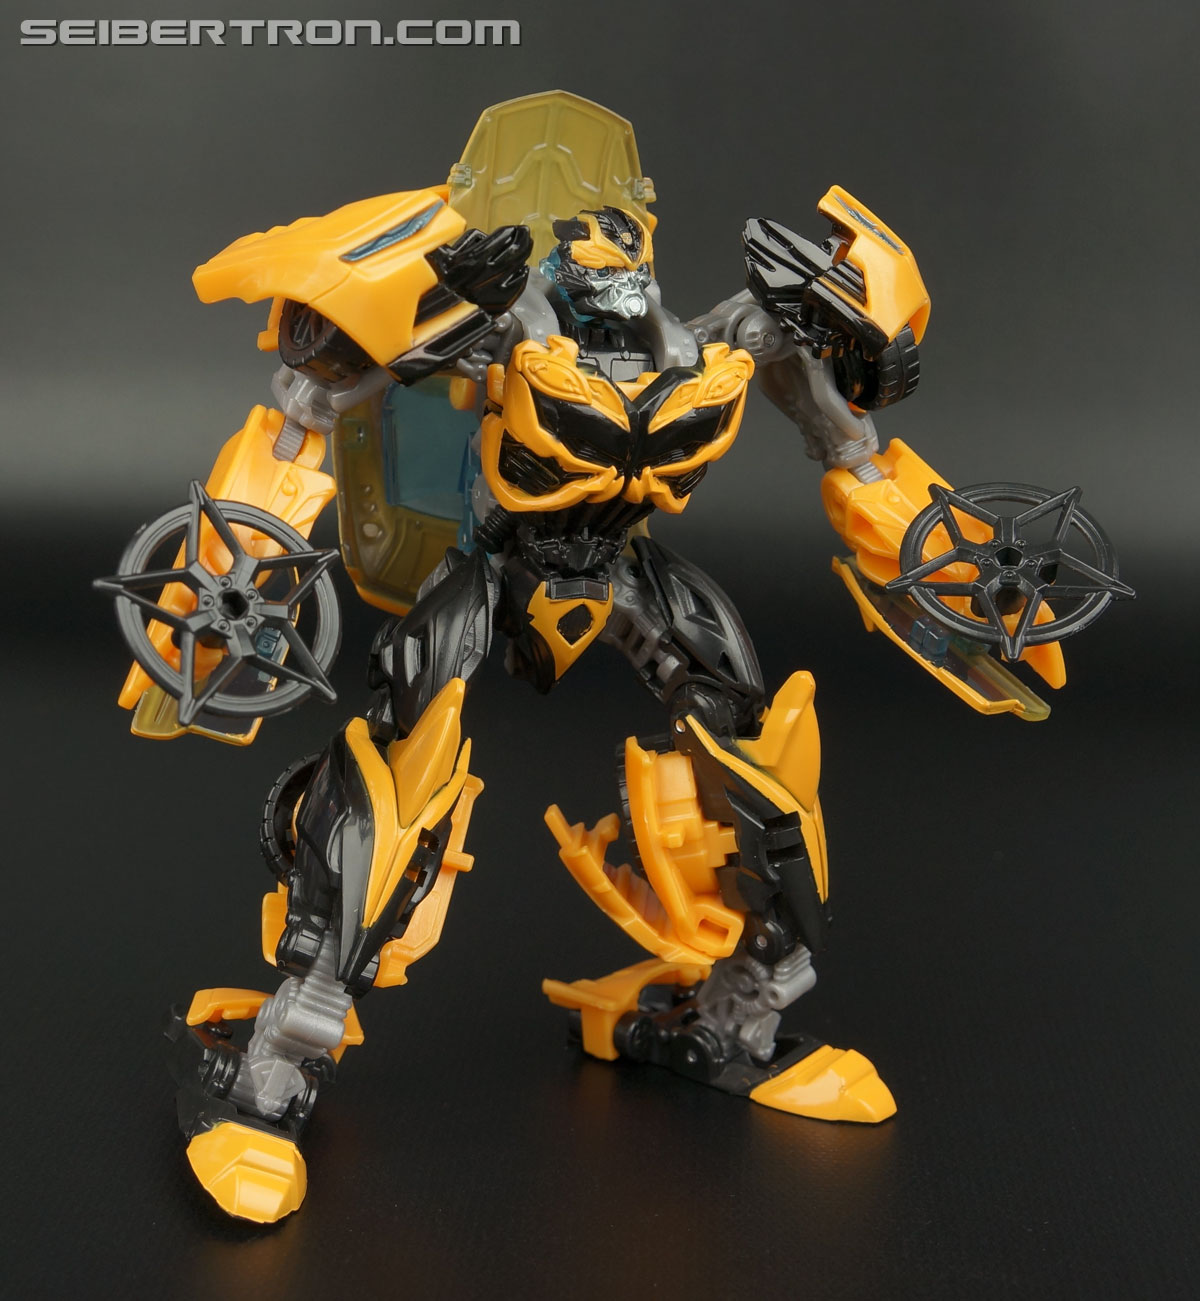 Transformers Age of Extinction: Generations Bumblebee (Image #117 of 190)